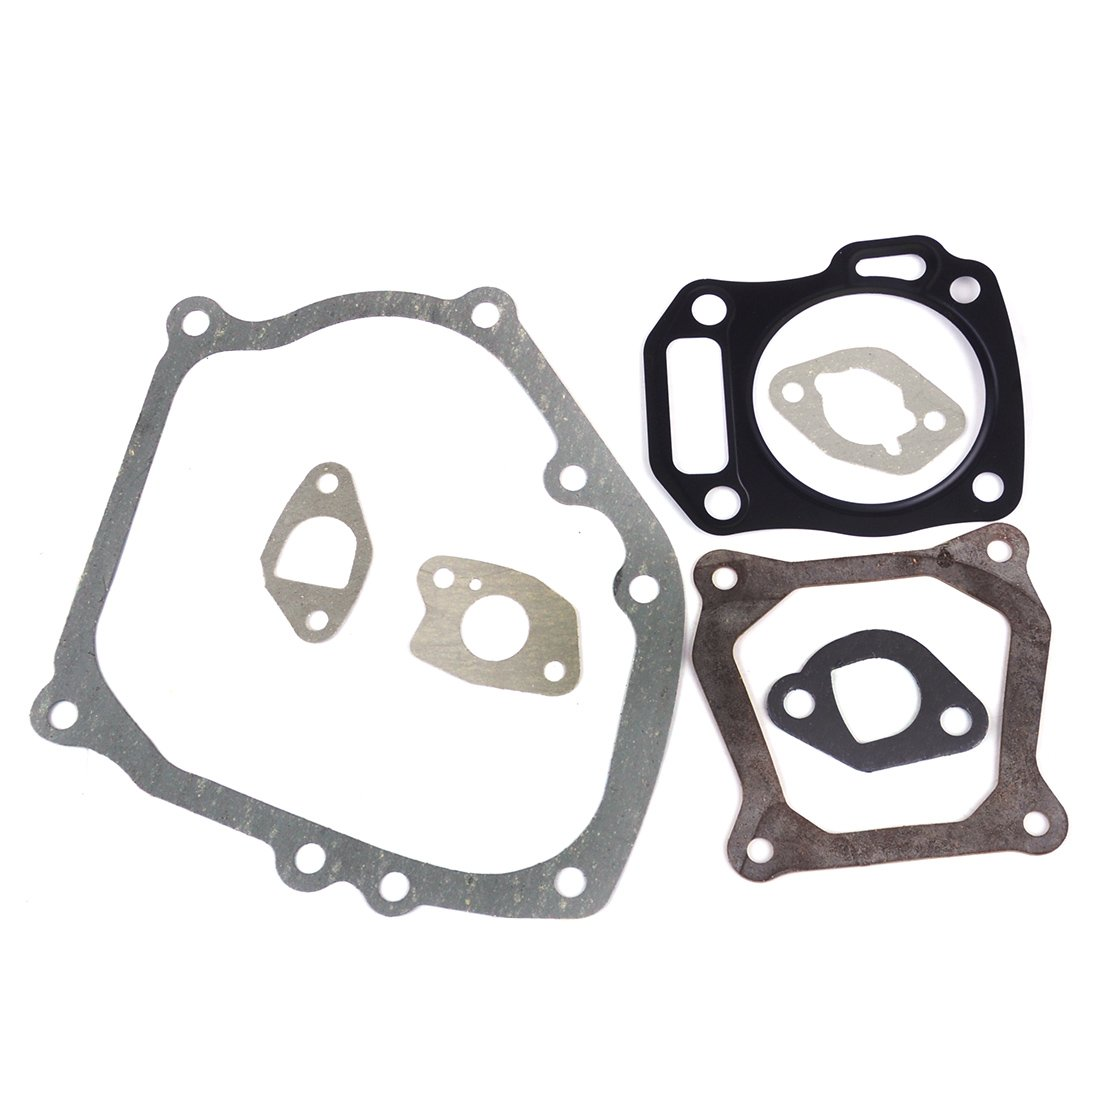 Gasket Kit fits for Honda GX160 5.5HP GX200 6.5HP China 168F 168FA 168FB Gasoline Engine Generator 7 pcs set eastar